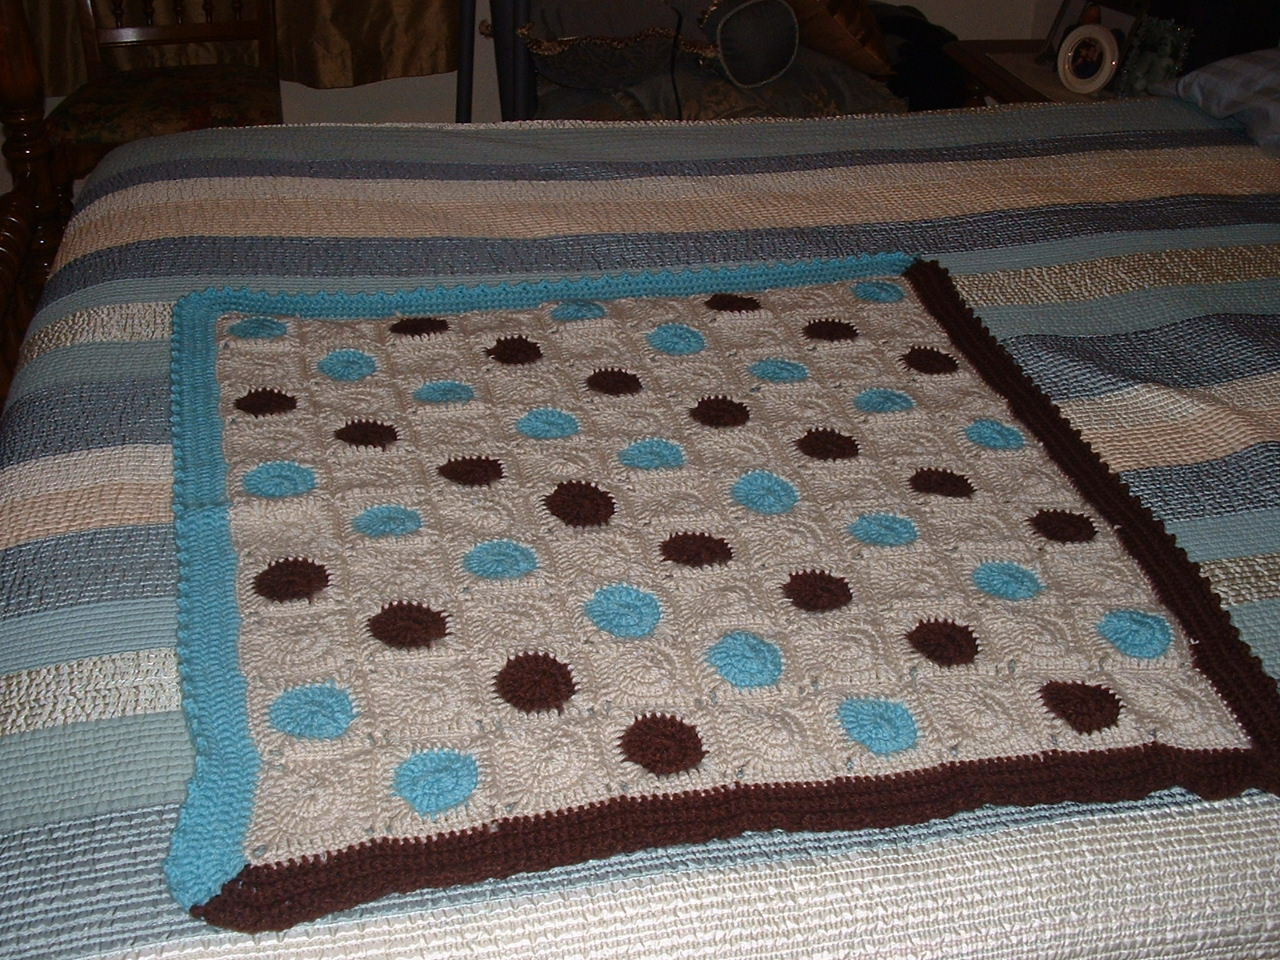 New handmade crochet baby blanket | Shop new handmade crochet baby